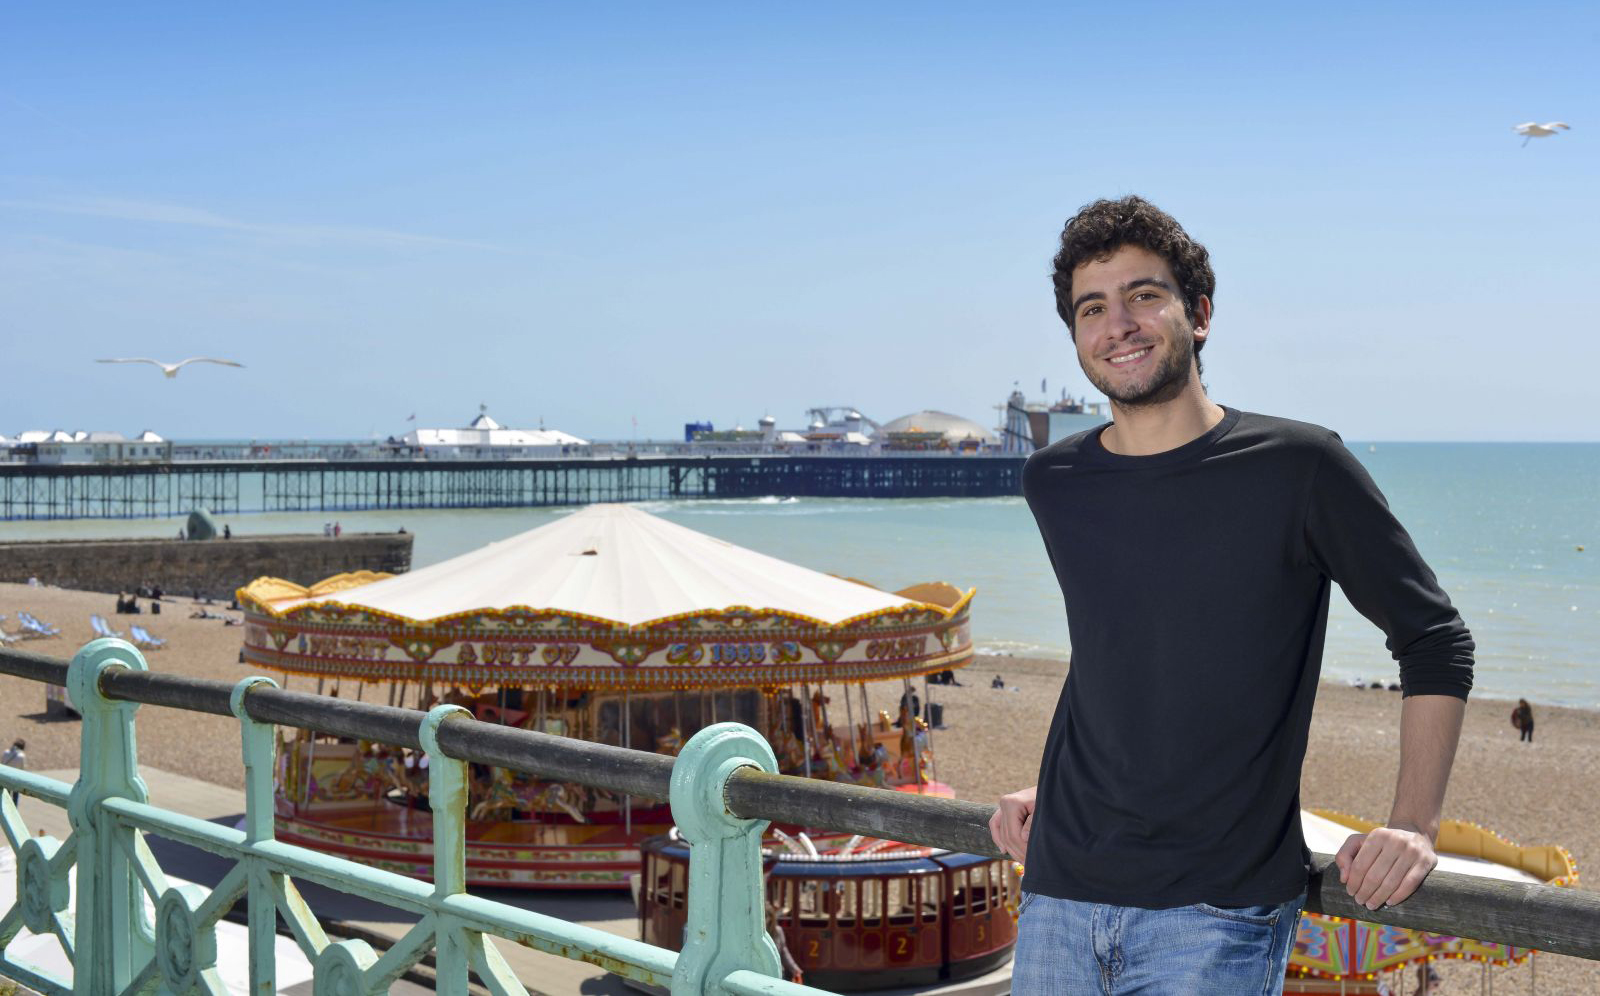 An exchange student on a study abroad experience at Sussex, standing on Brighton seafront with the pier behind him.